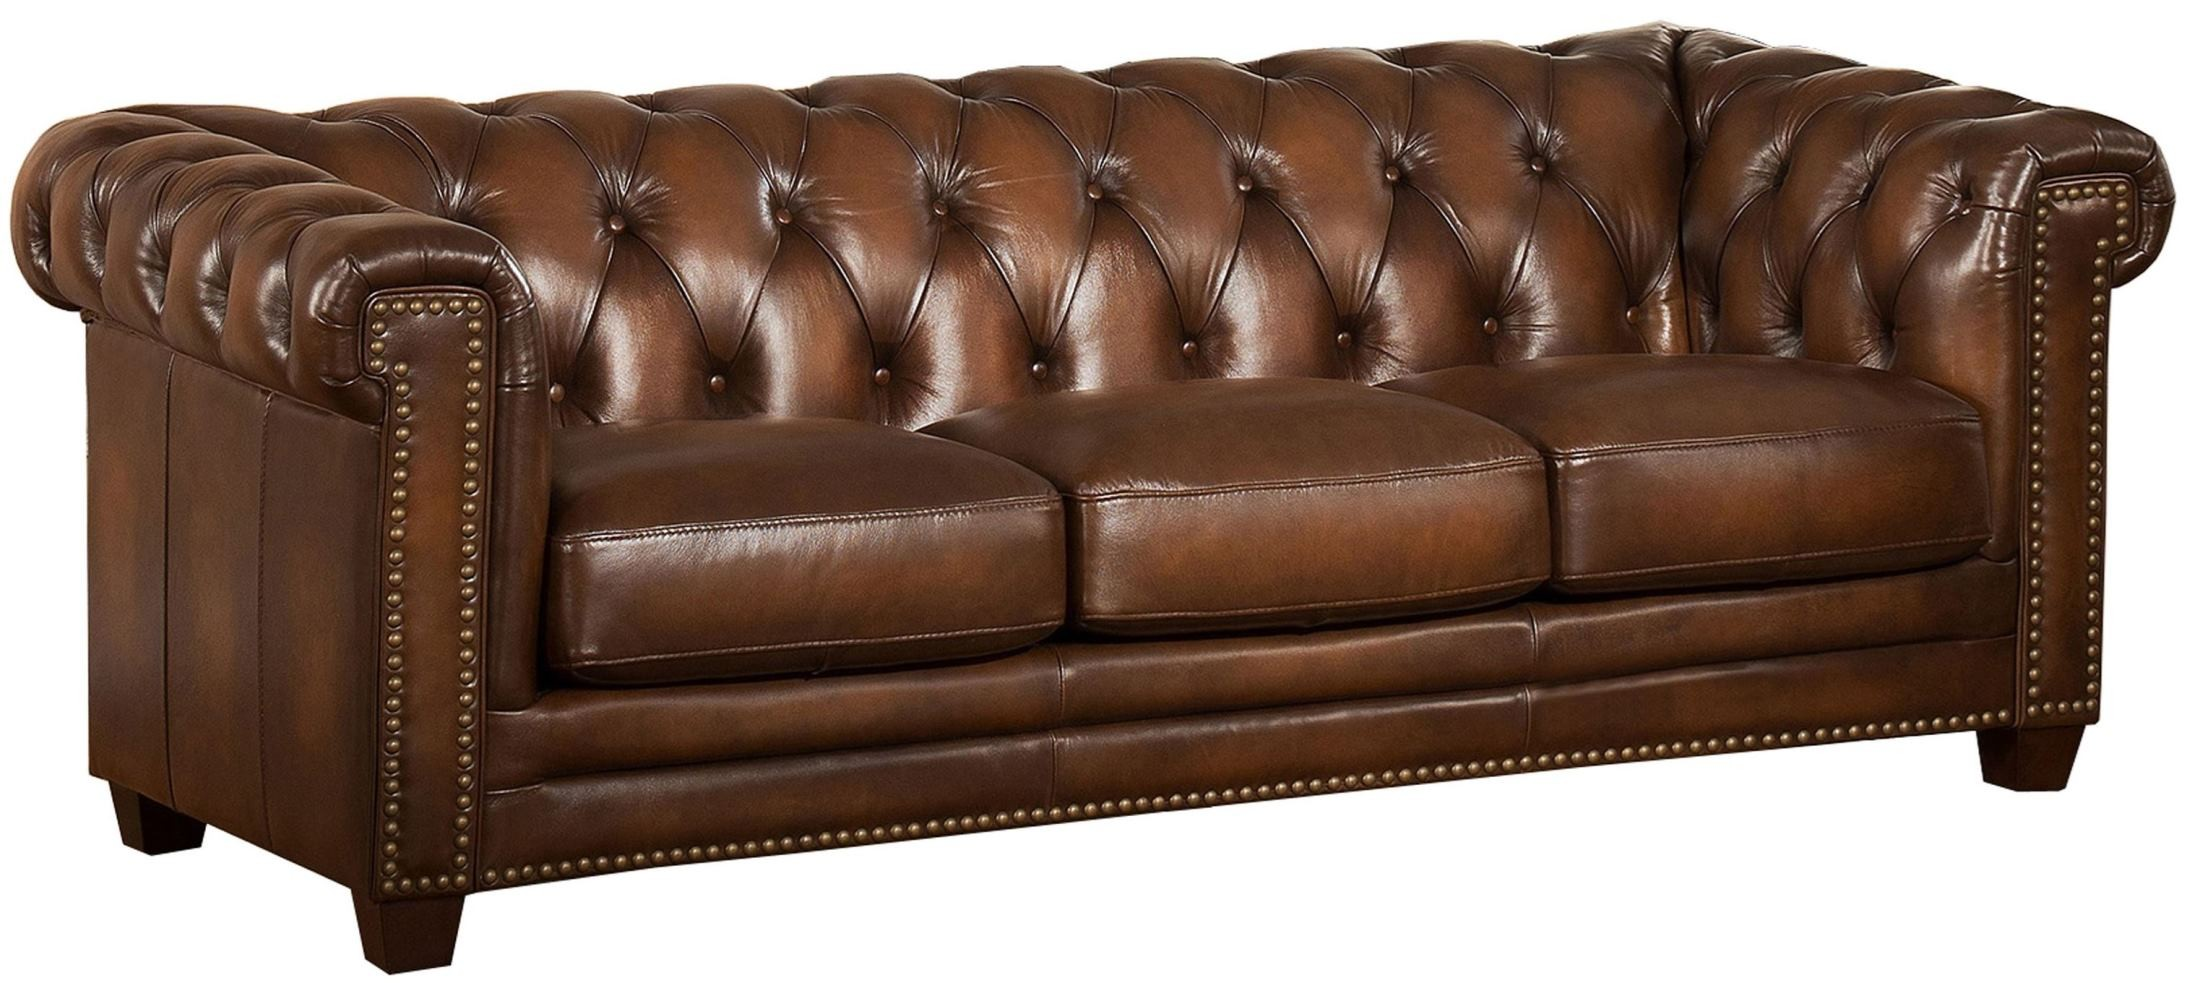 Stanley Park II Brown Leather Sofa from Amax Leather  Coleman Furniture